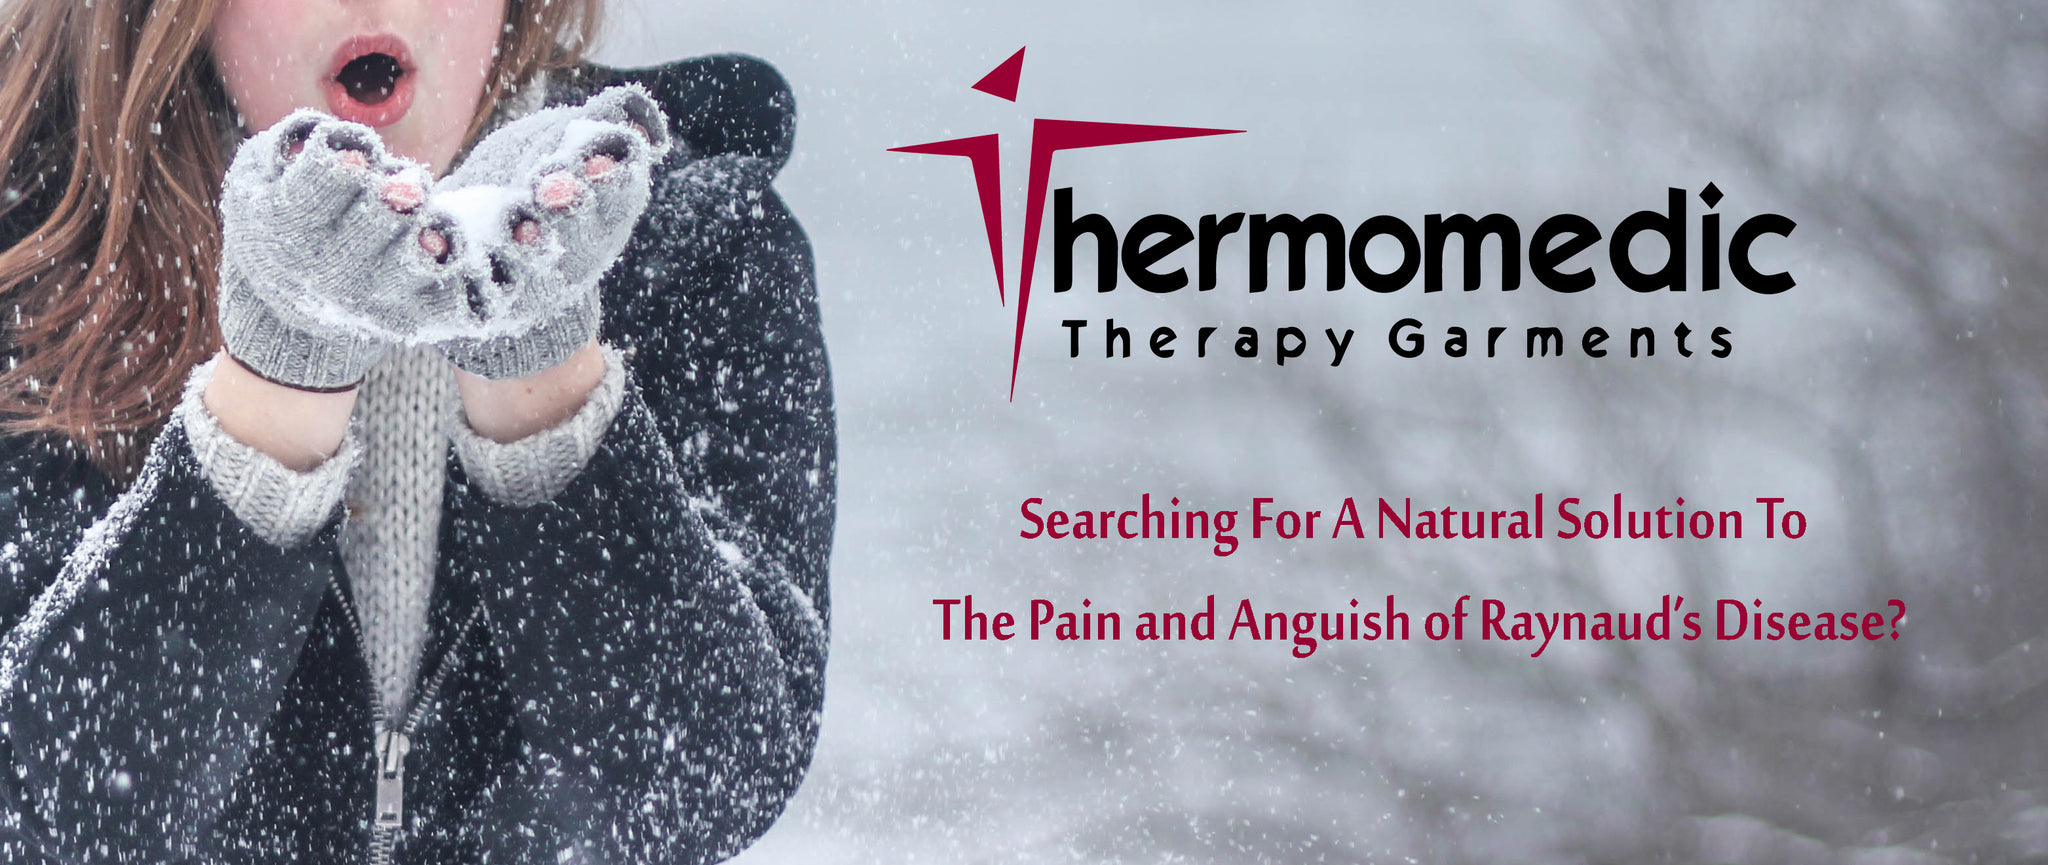 Far Infrared Therapy Raynaud's  Gloves Help Give Soothing Gentle Relief For Sore, Aching or Cold Hands and Fingers